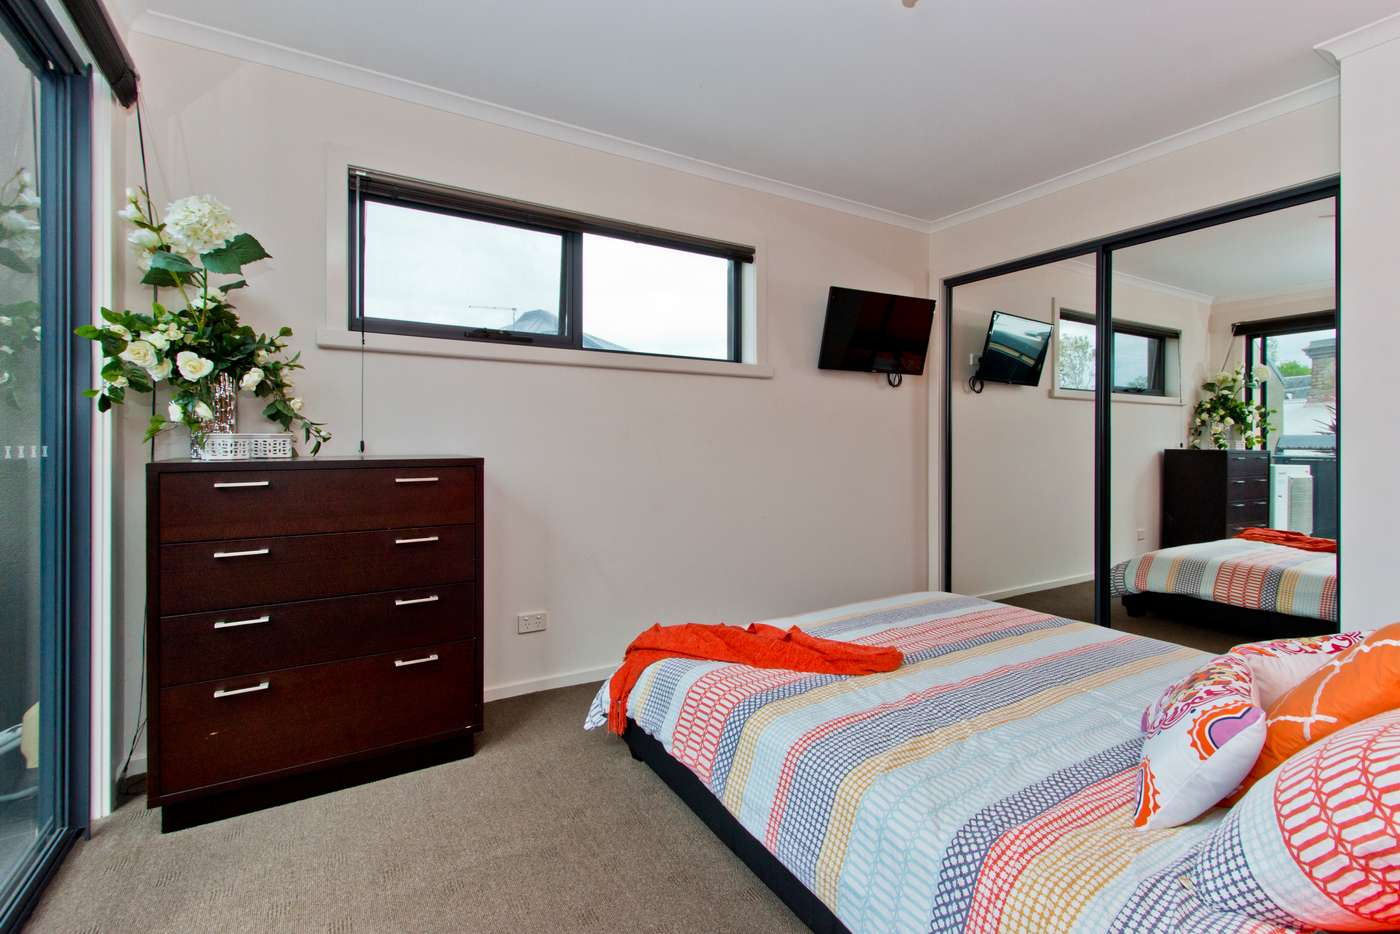 Sixth view of Homely townhouse listing, 8/4 Bryan Street, Invermay TAS 7248